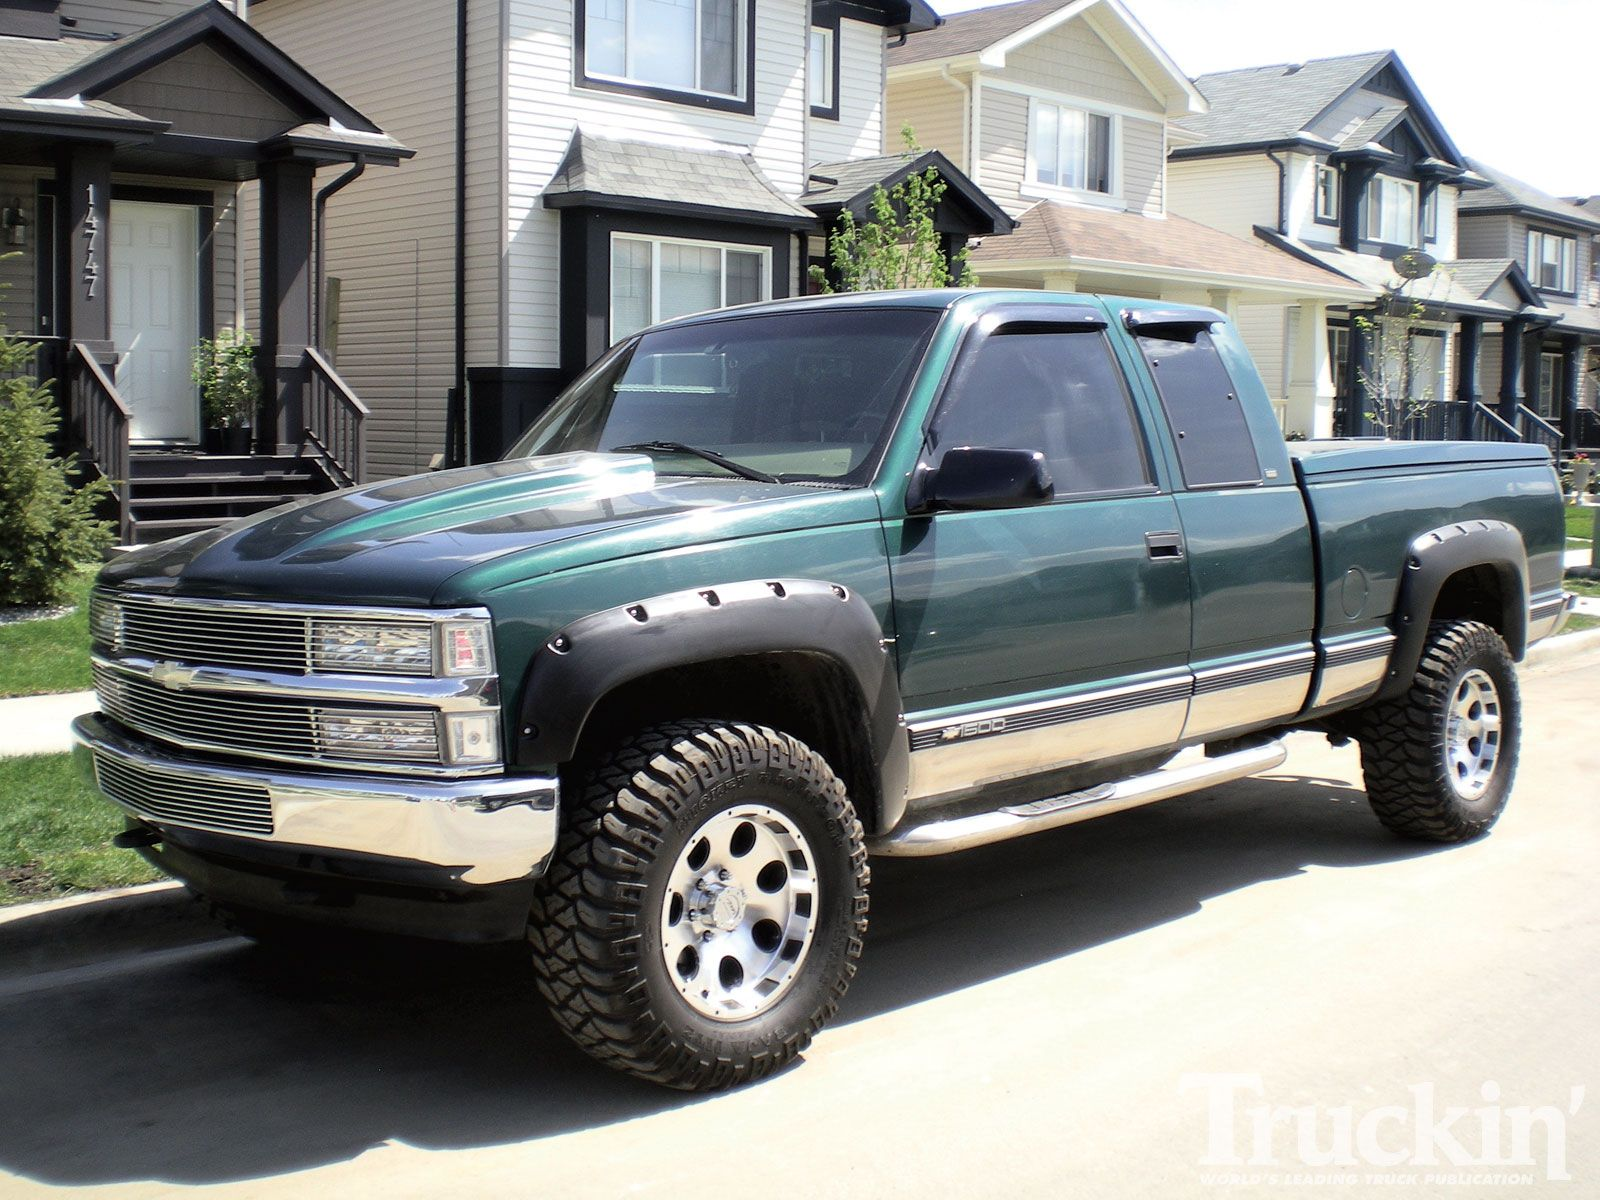 hight resolution of 98 chevy silverado parts truckin magazine readers rides 1998 chevy silverado photo 1